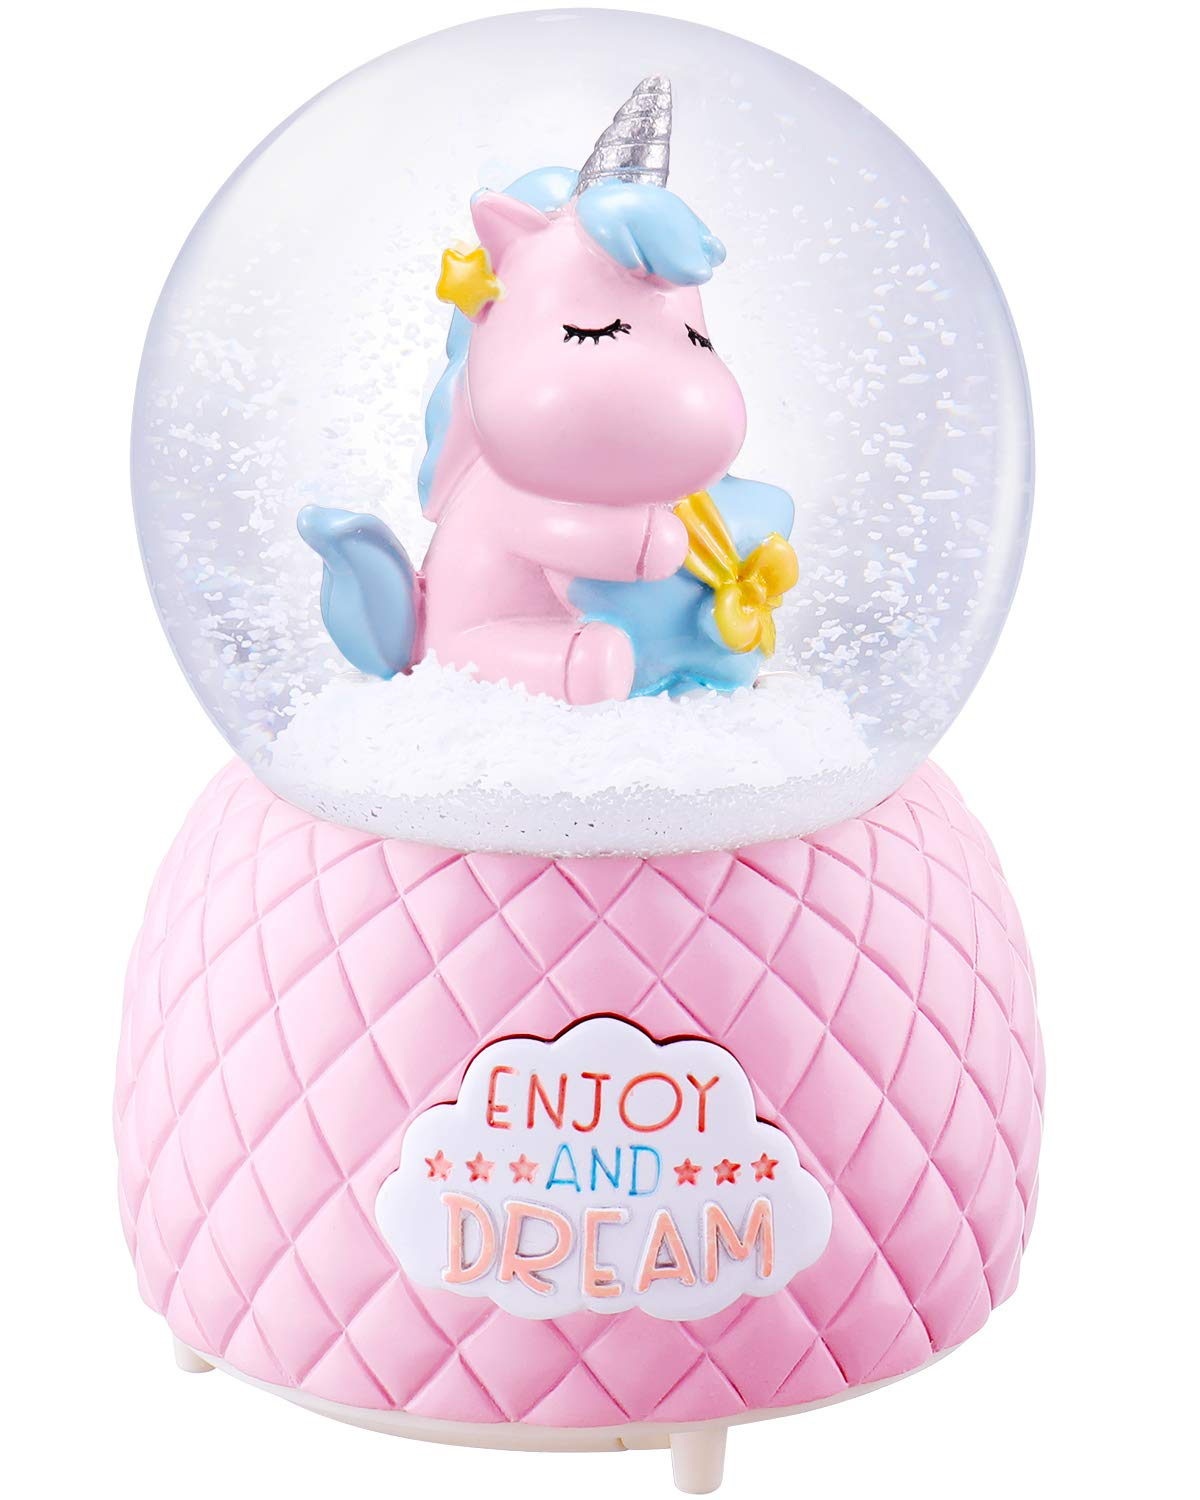 Musical Unicorn Snow Globe for Kids, 100mm Resin Glitter Music Box with Multiple Tunes, Gift for Girls - Pink